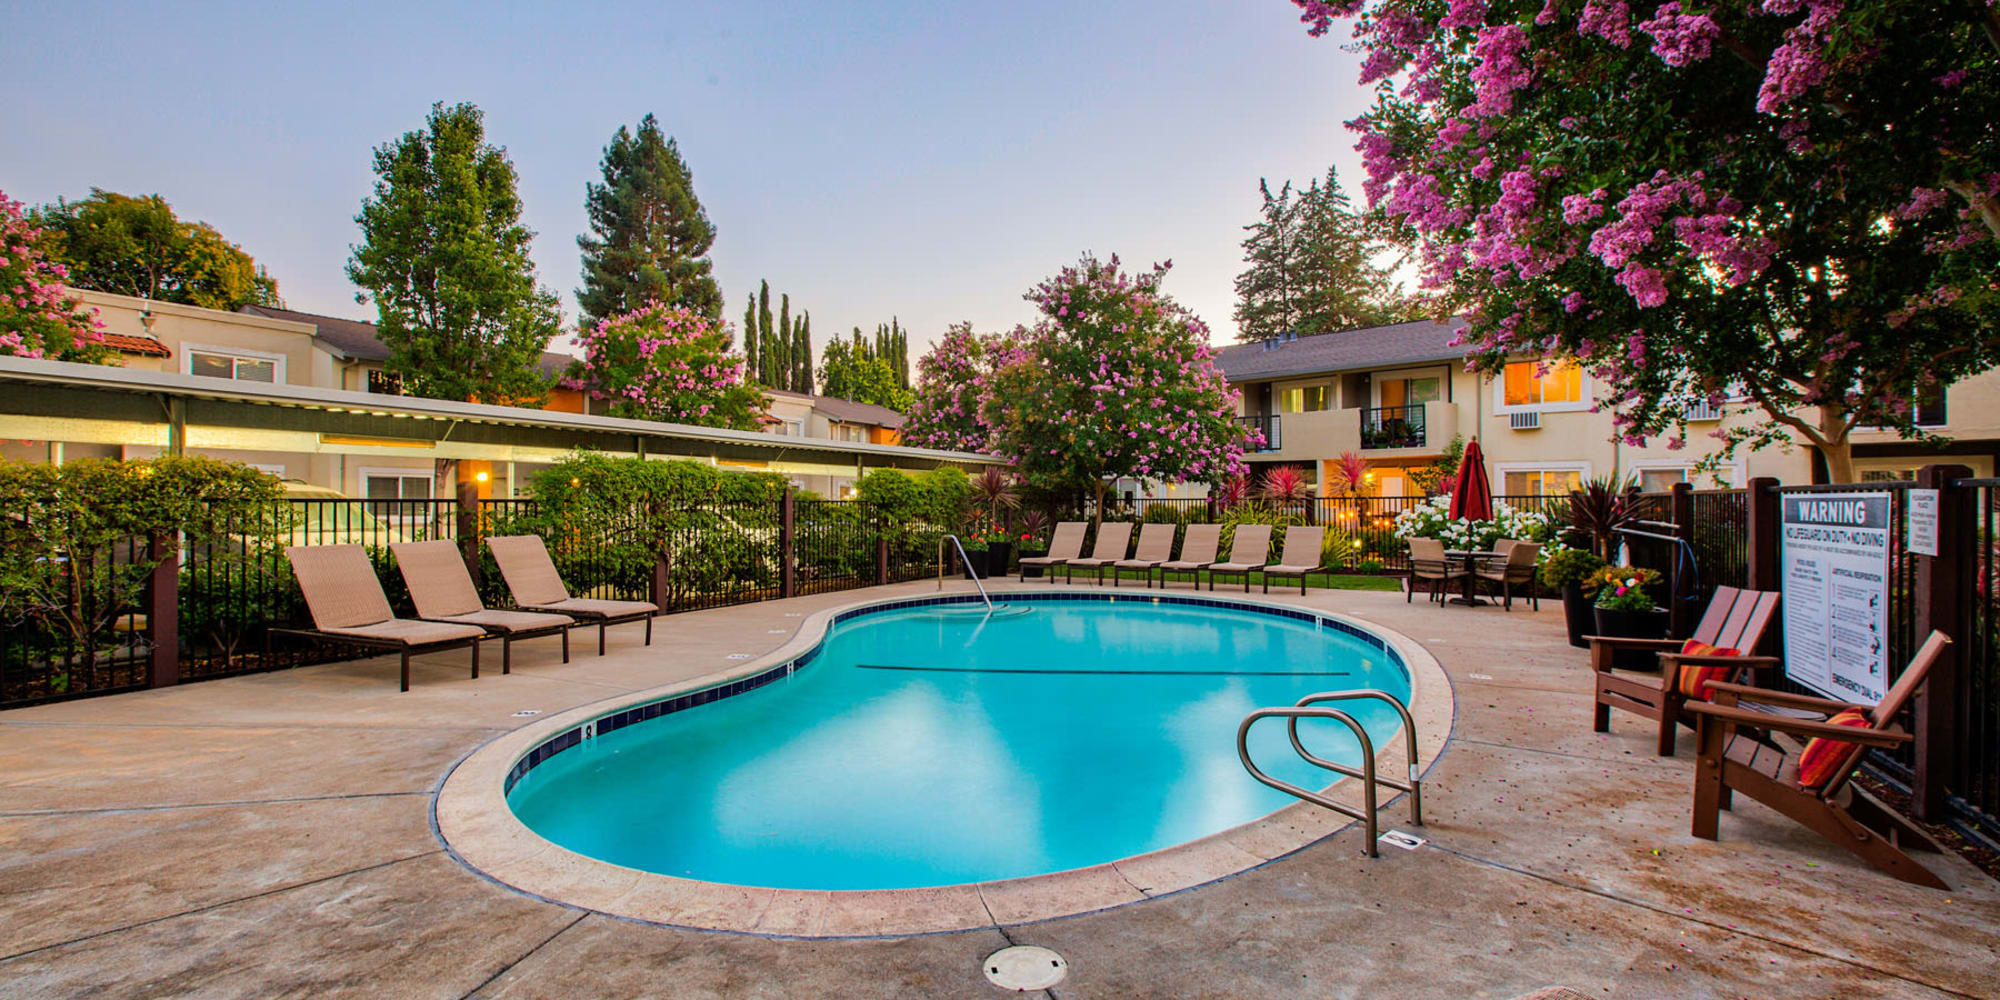 Dusk coming on with the community's evening lights at the pool area at Pleasanton Place Apartment Homes in Pleasanton, California